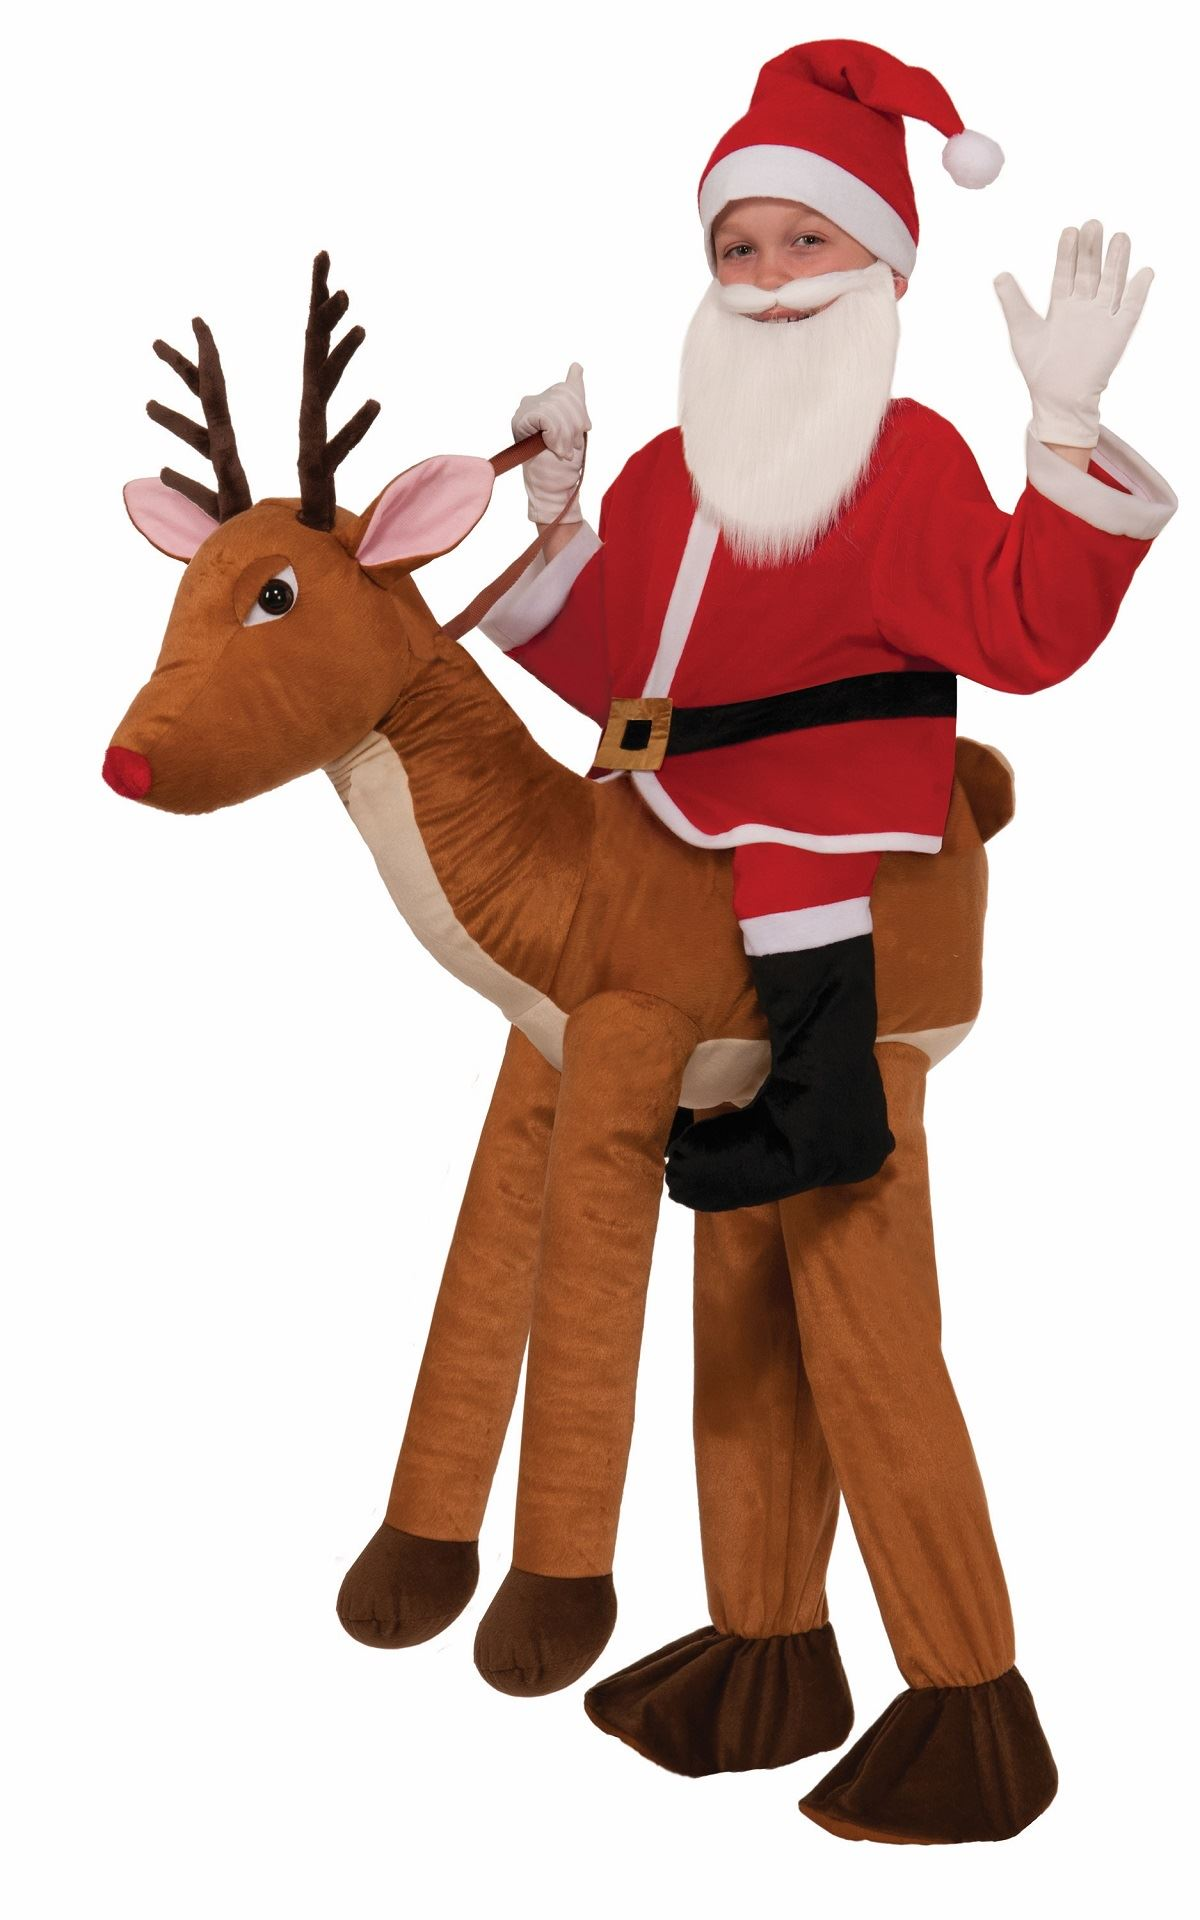 Santa Claus Ride a Reindeer Kids Halloween Costume  5499  The